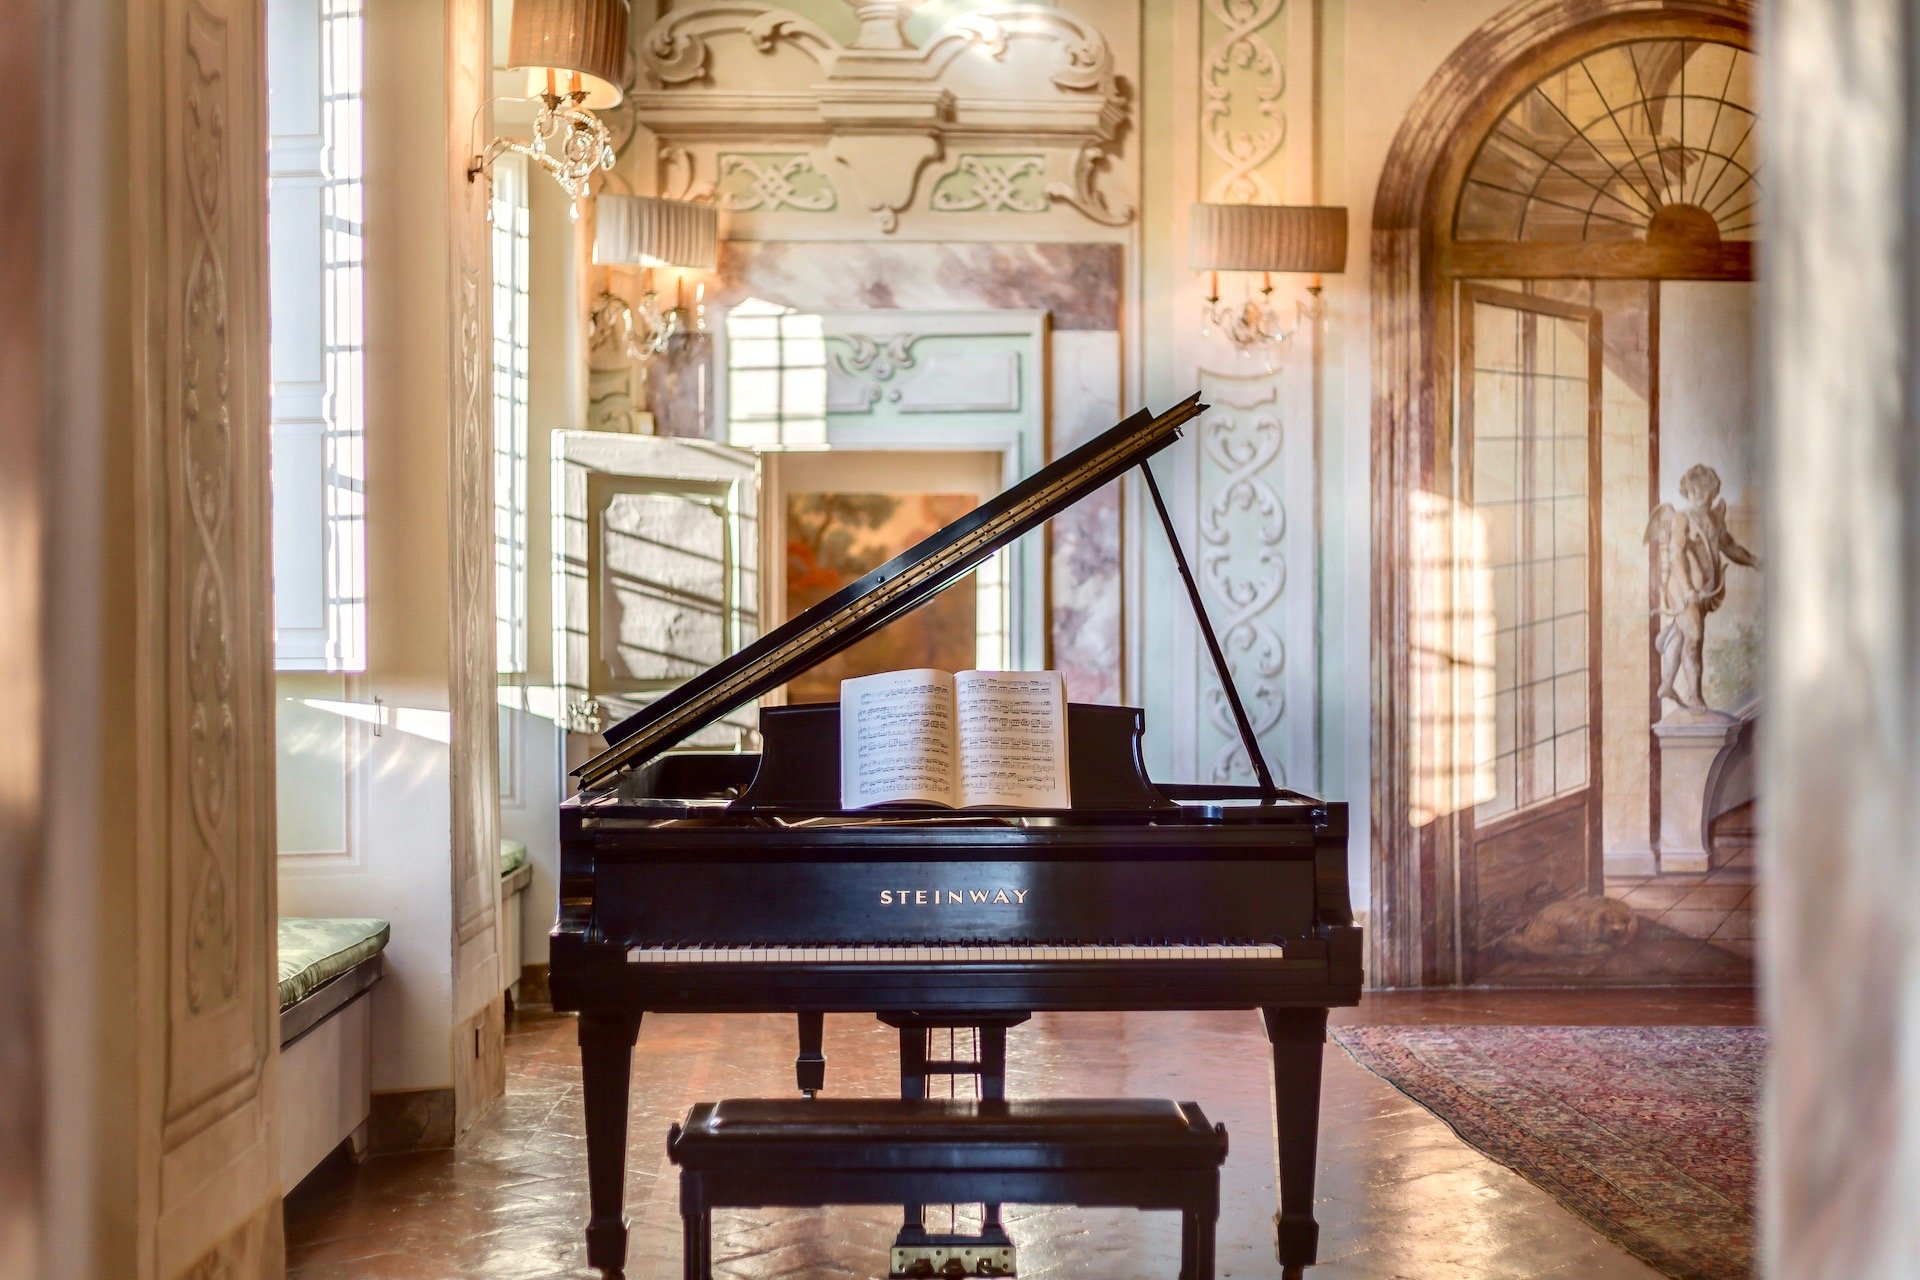 5.The Piano Detail